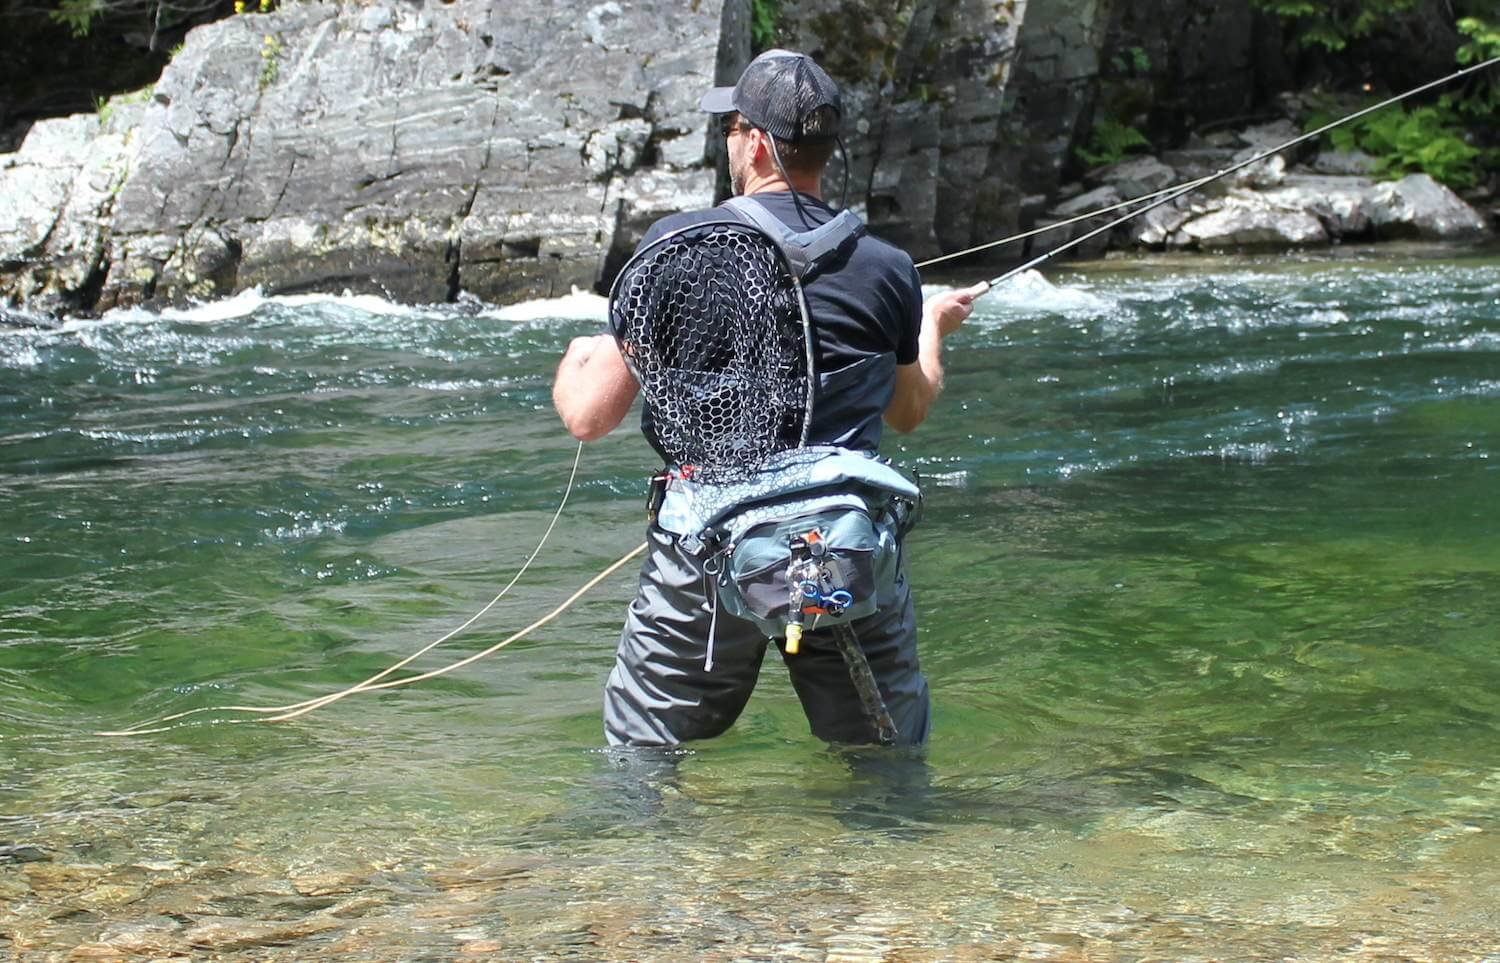 This best fly fishing hip pack photo shows the author testing a fishing hip pack in a river while fly fishing during the review process.